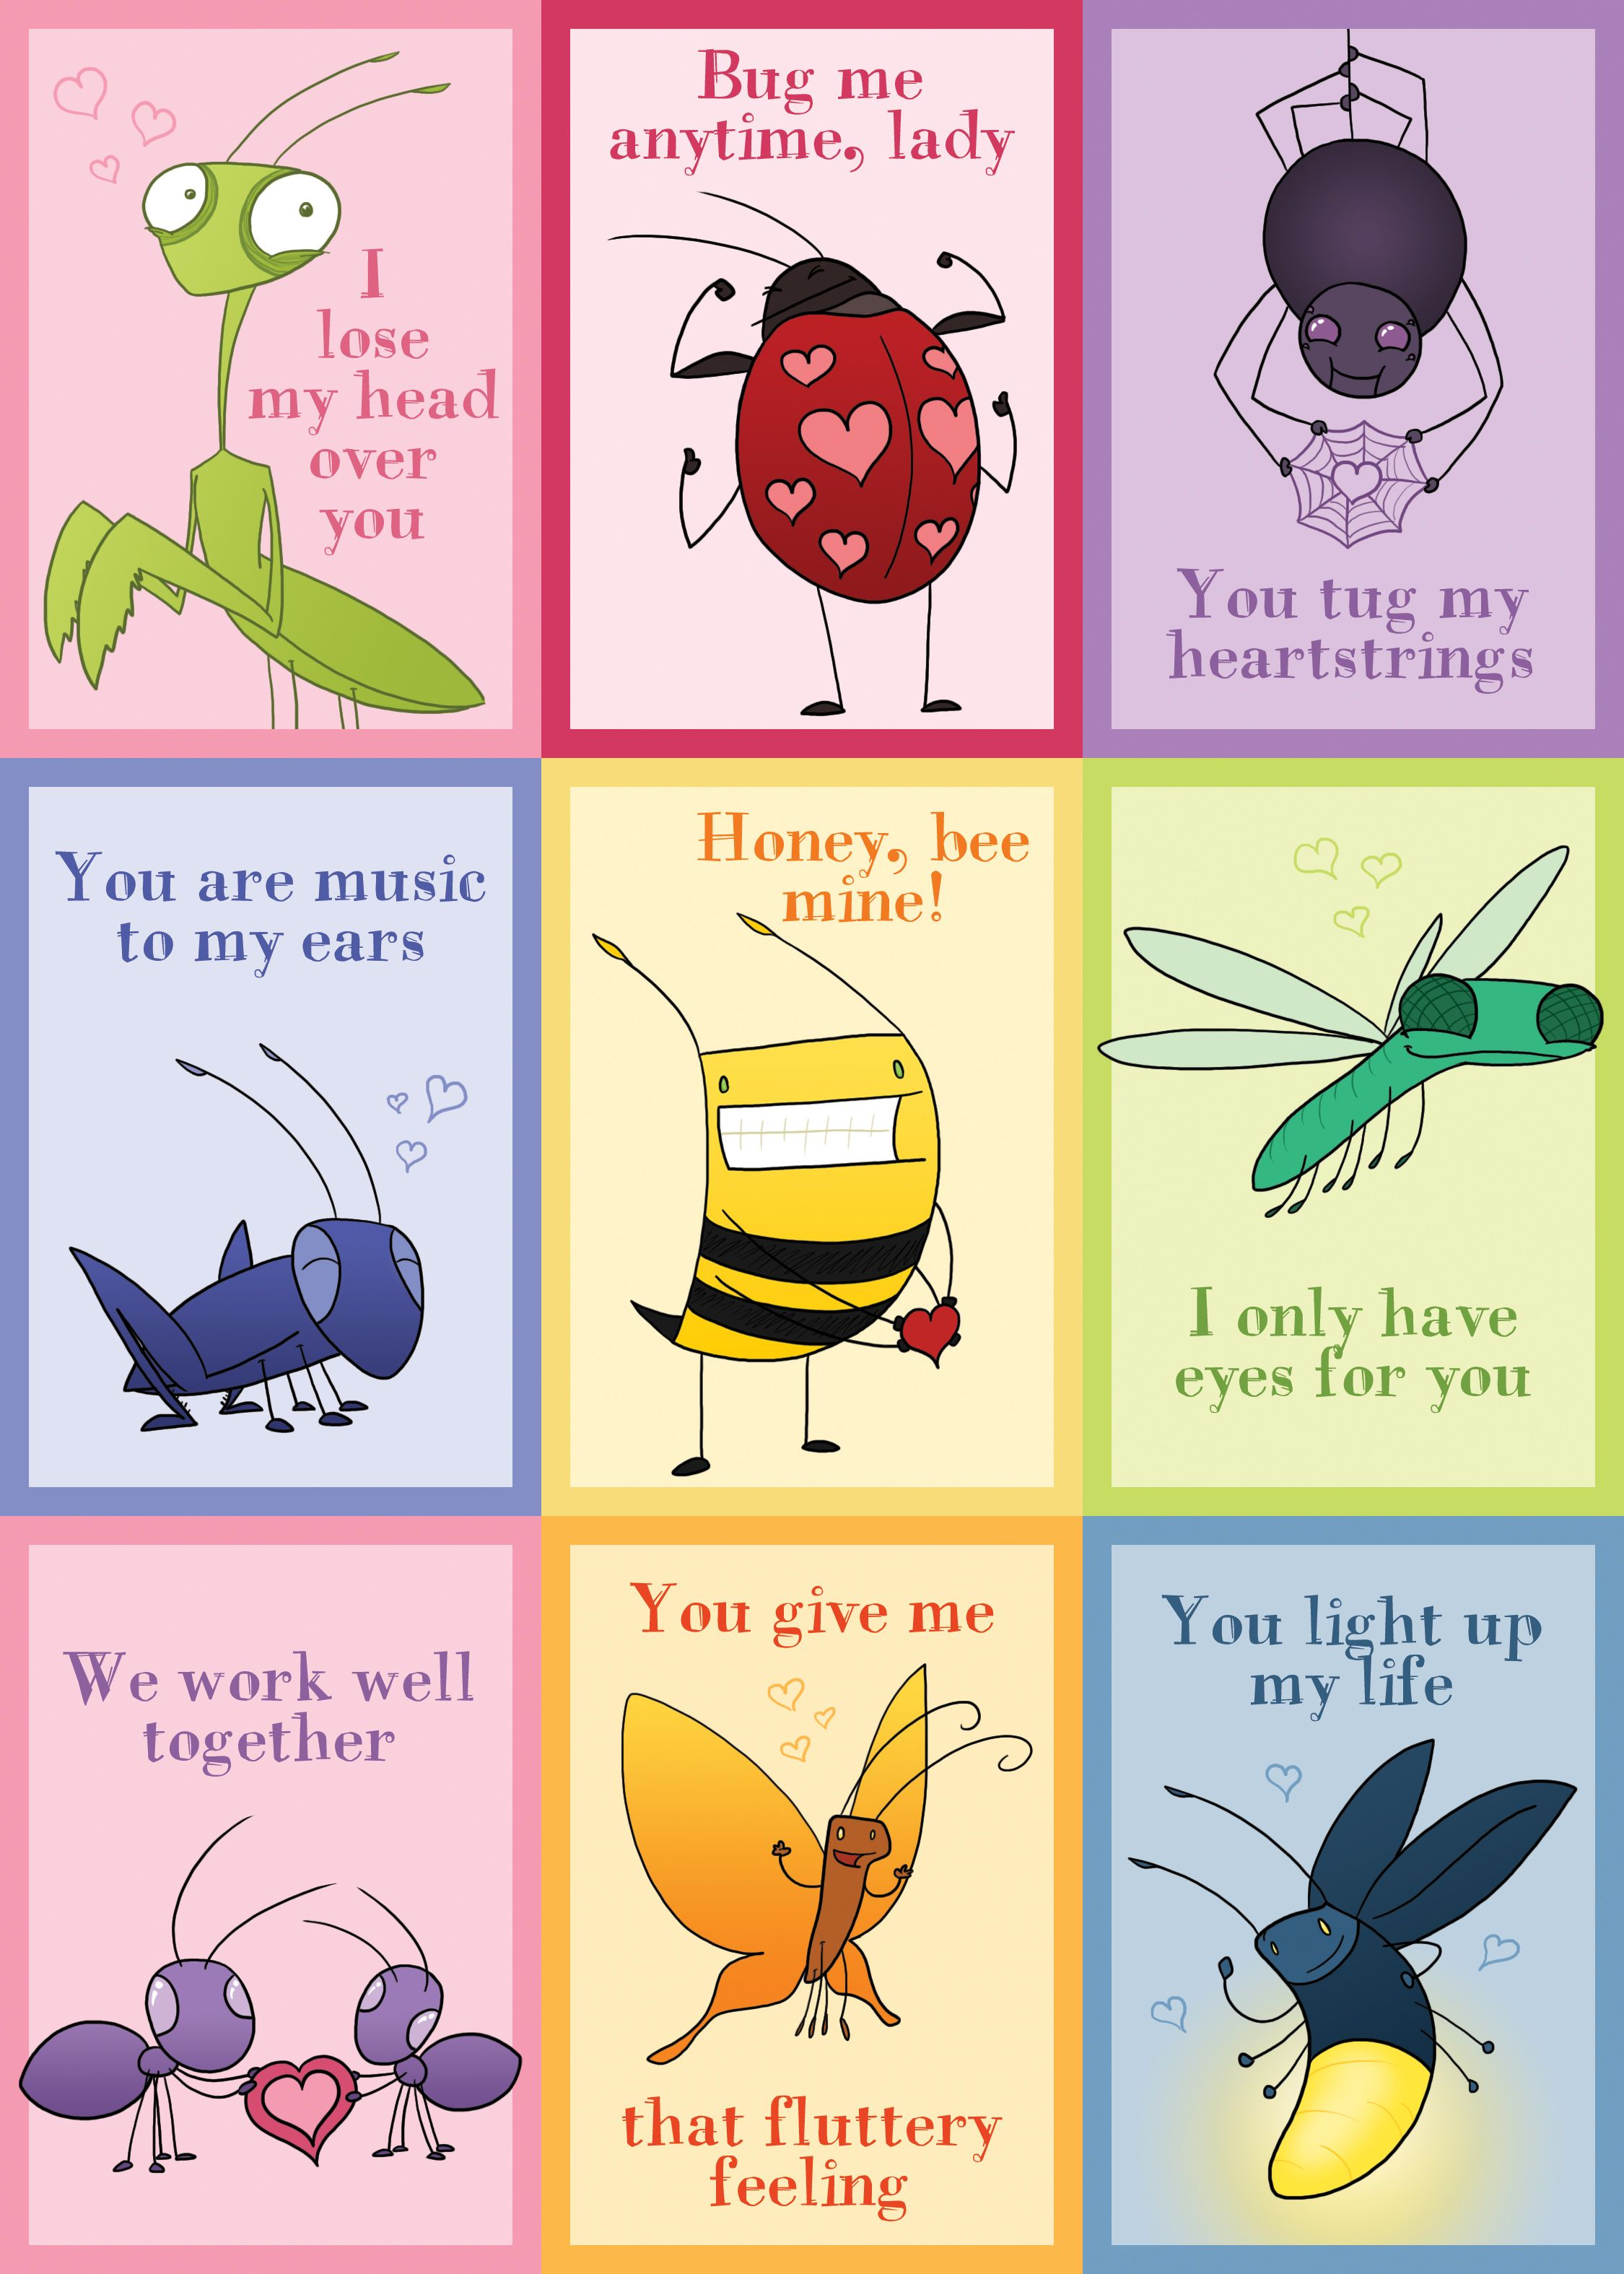 Couples Image Result For Valentines Day Animal Puns Pinterest Image Result For Valentines Day Animal Puns Rocks